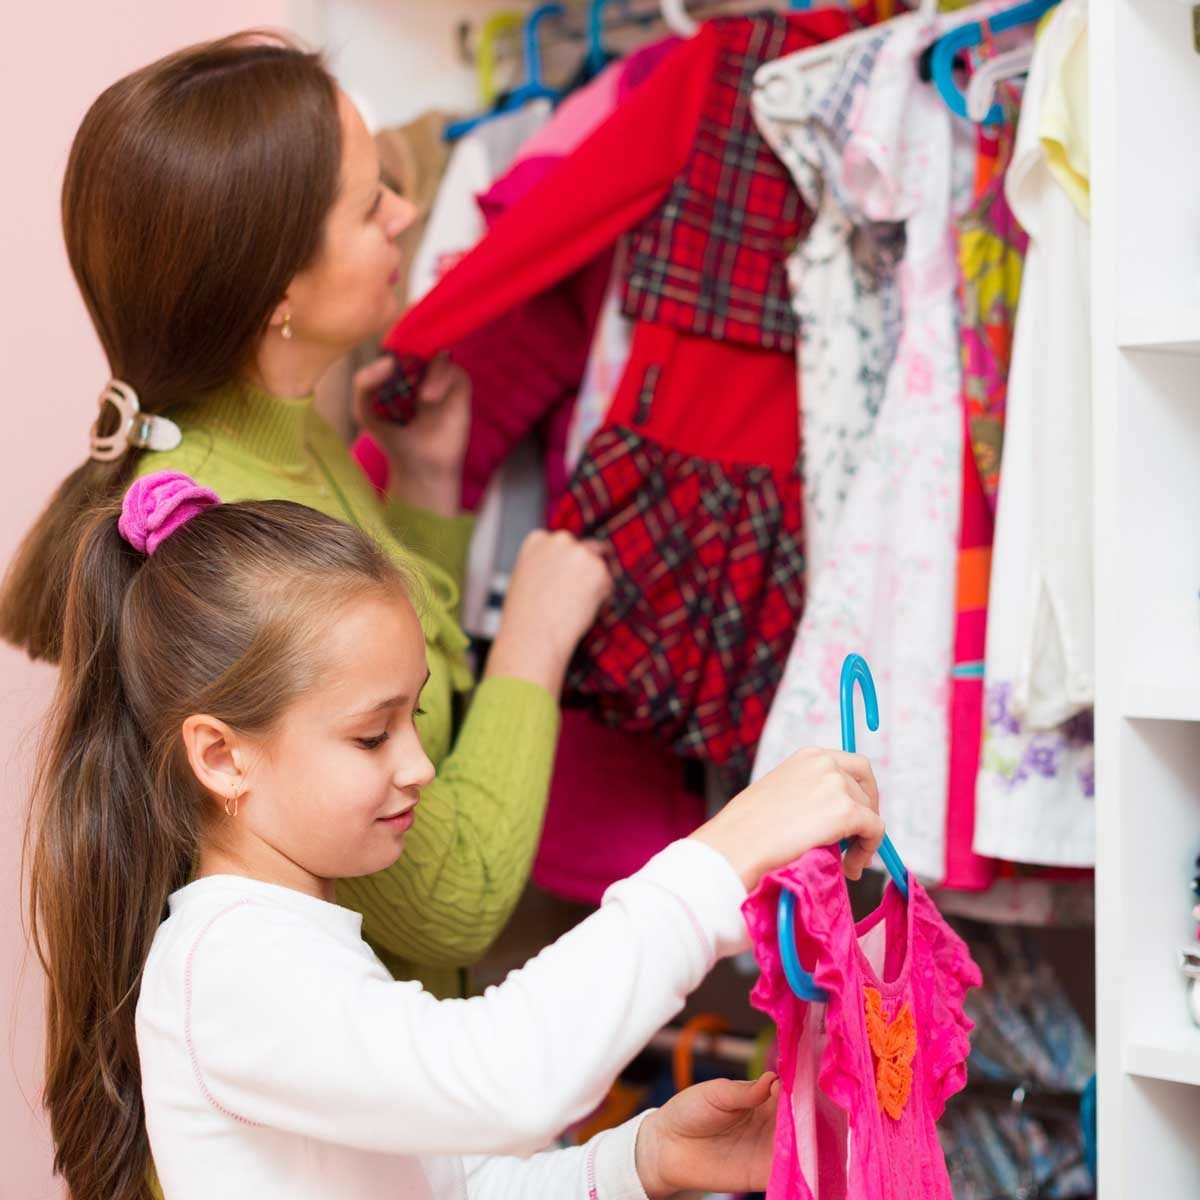 How to Organize a Small Closet for Kids